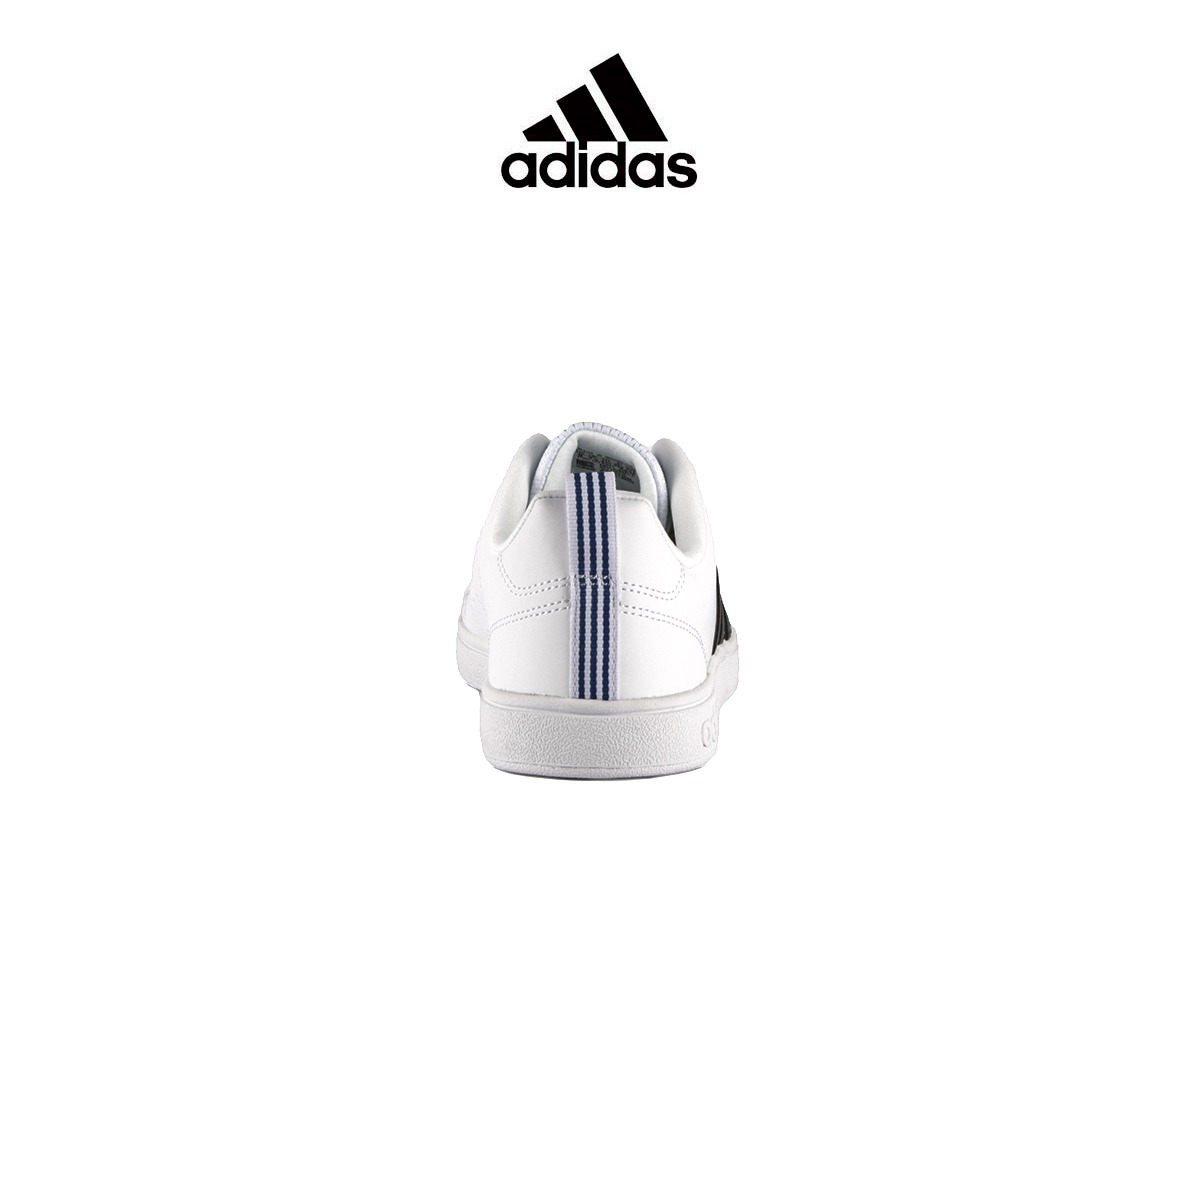 ADIDAS VS Advantage White Black Blue Hombre